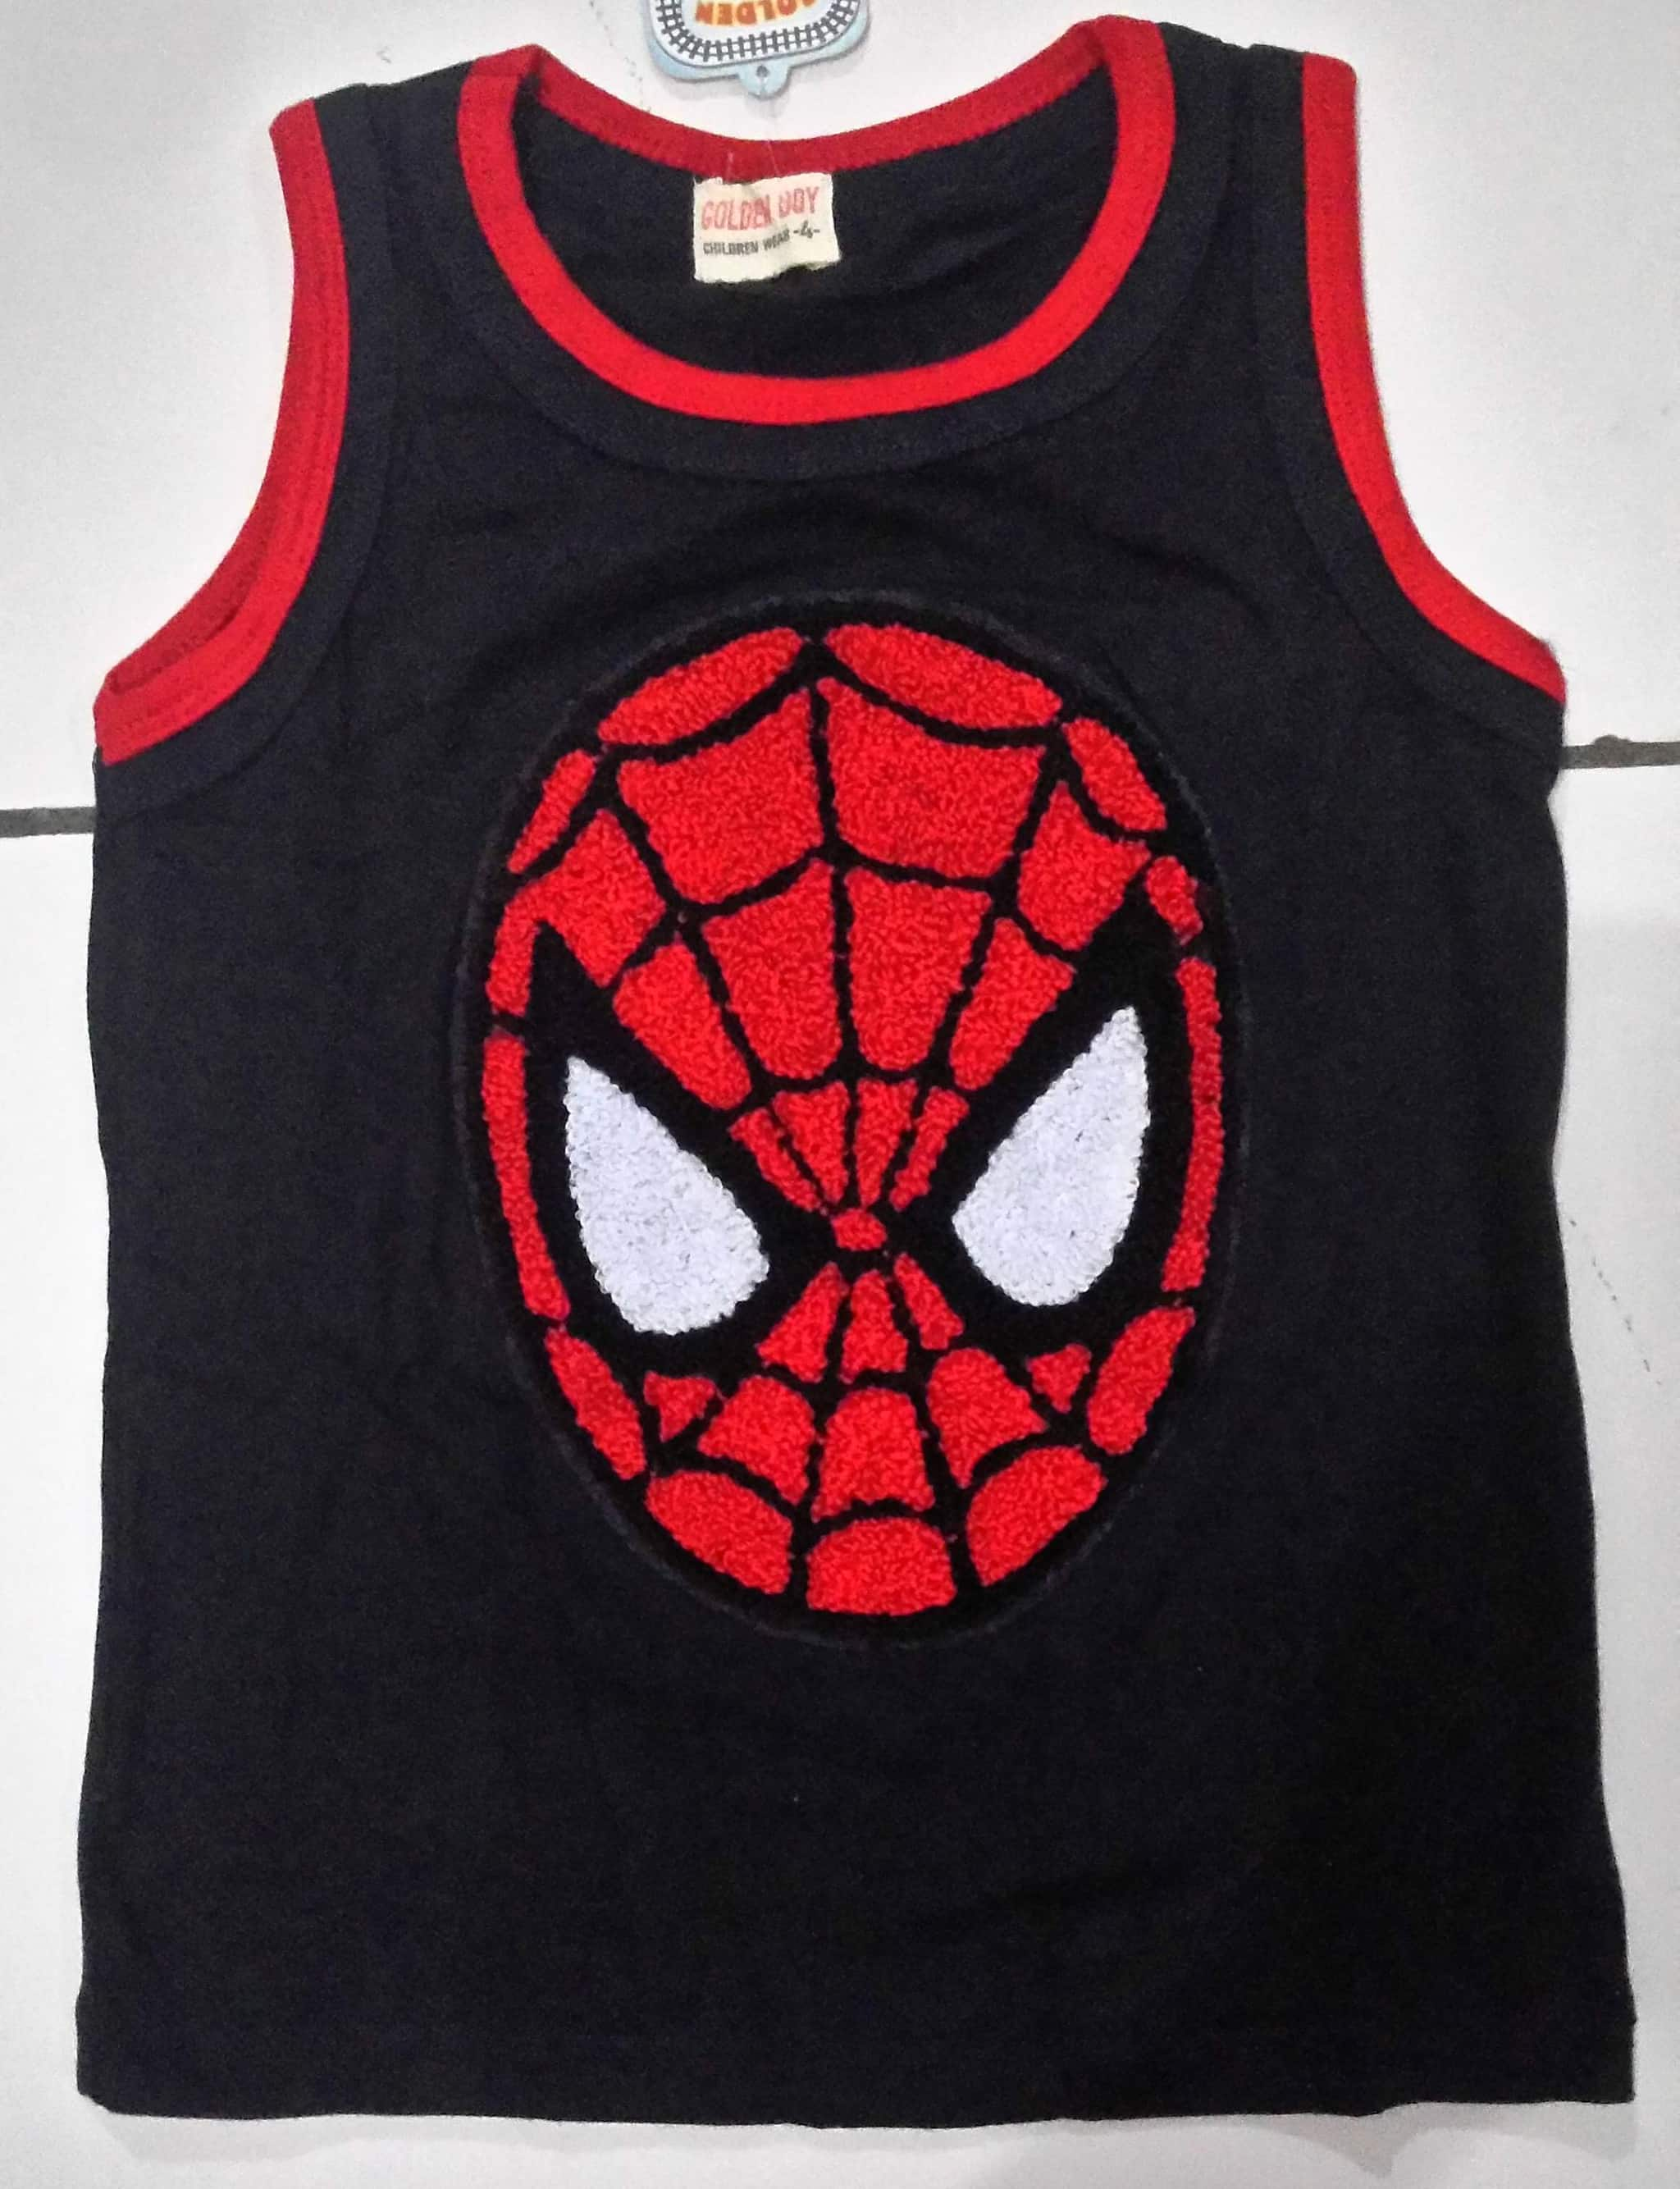 KSKDL24 - Koas Atasan Tanktop Spiderman Head Bordir Murah